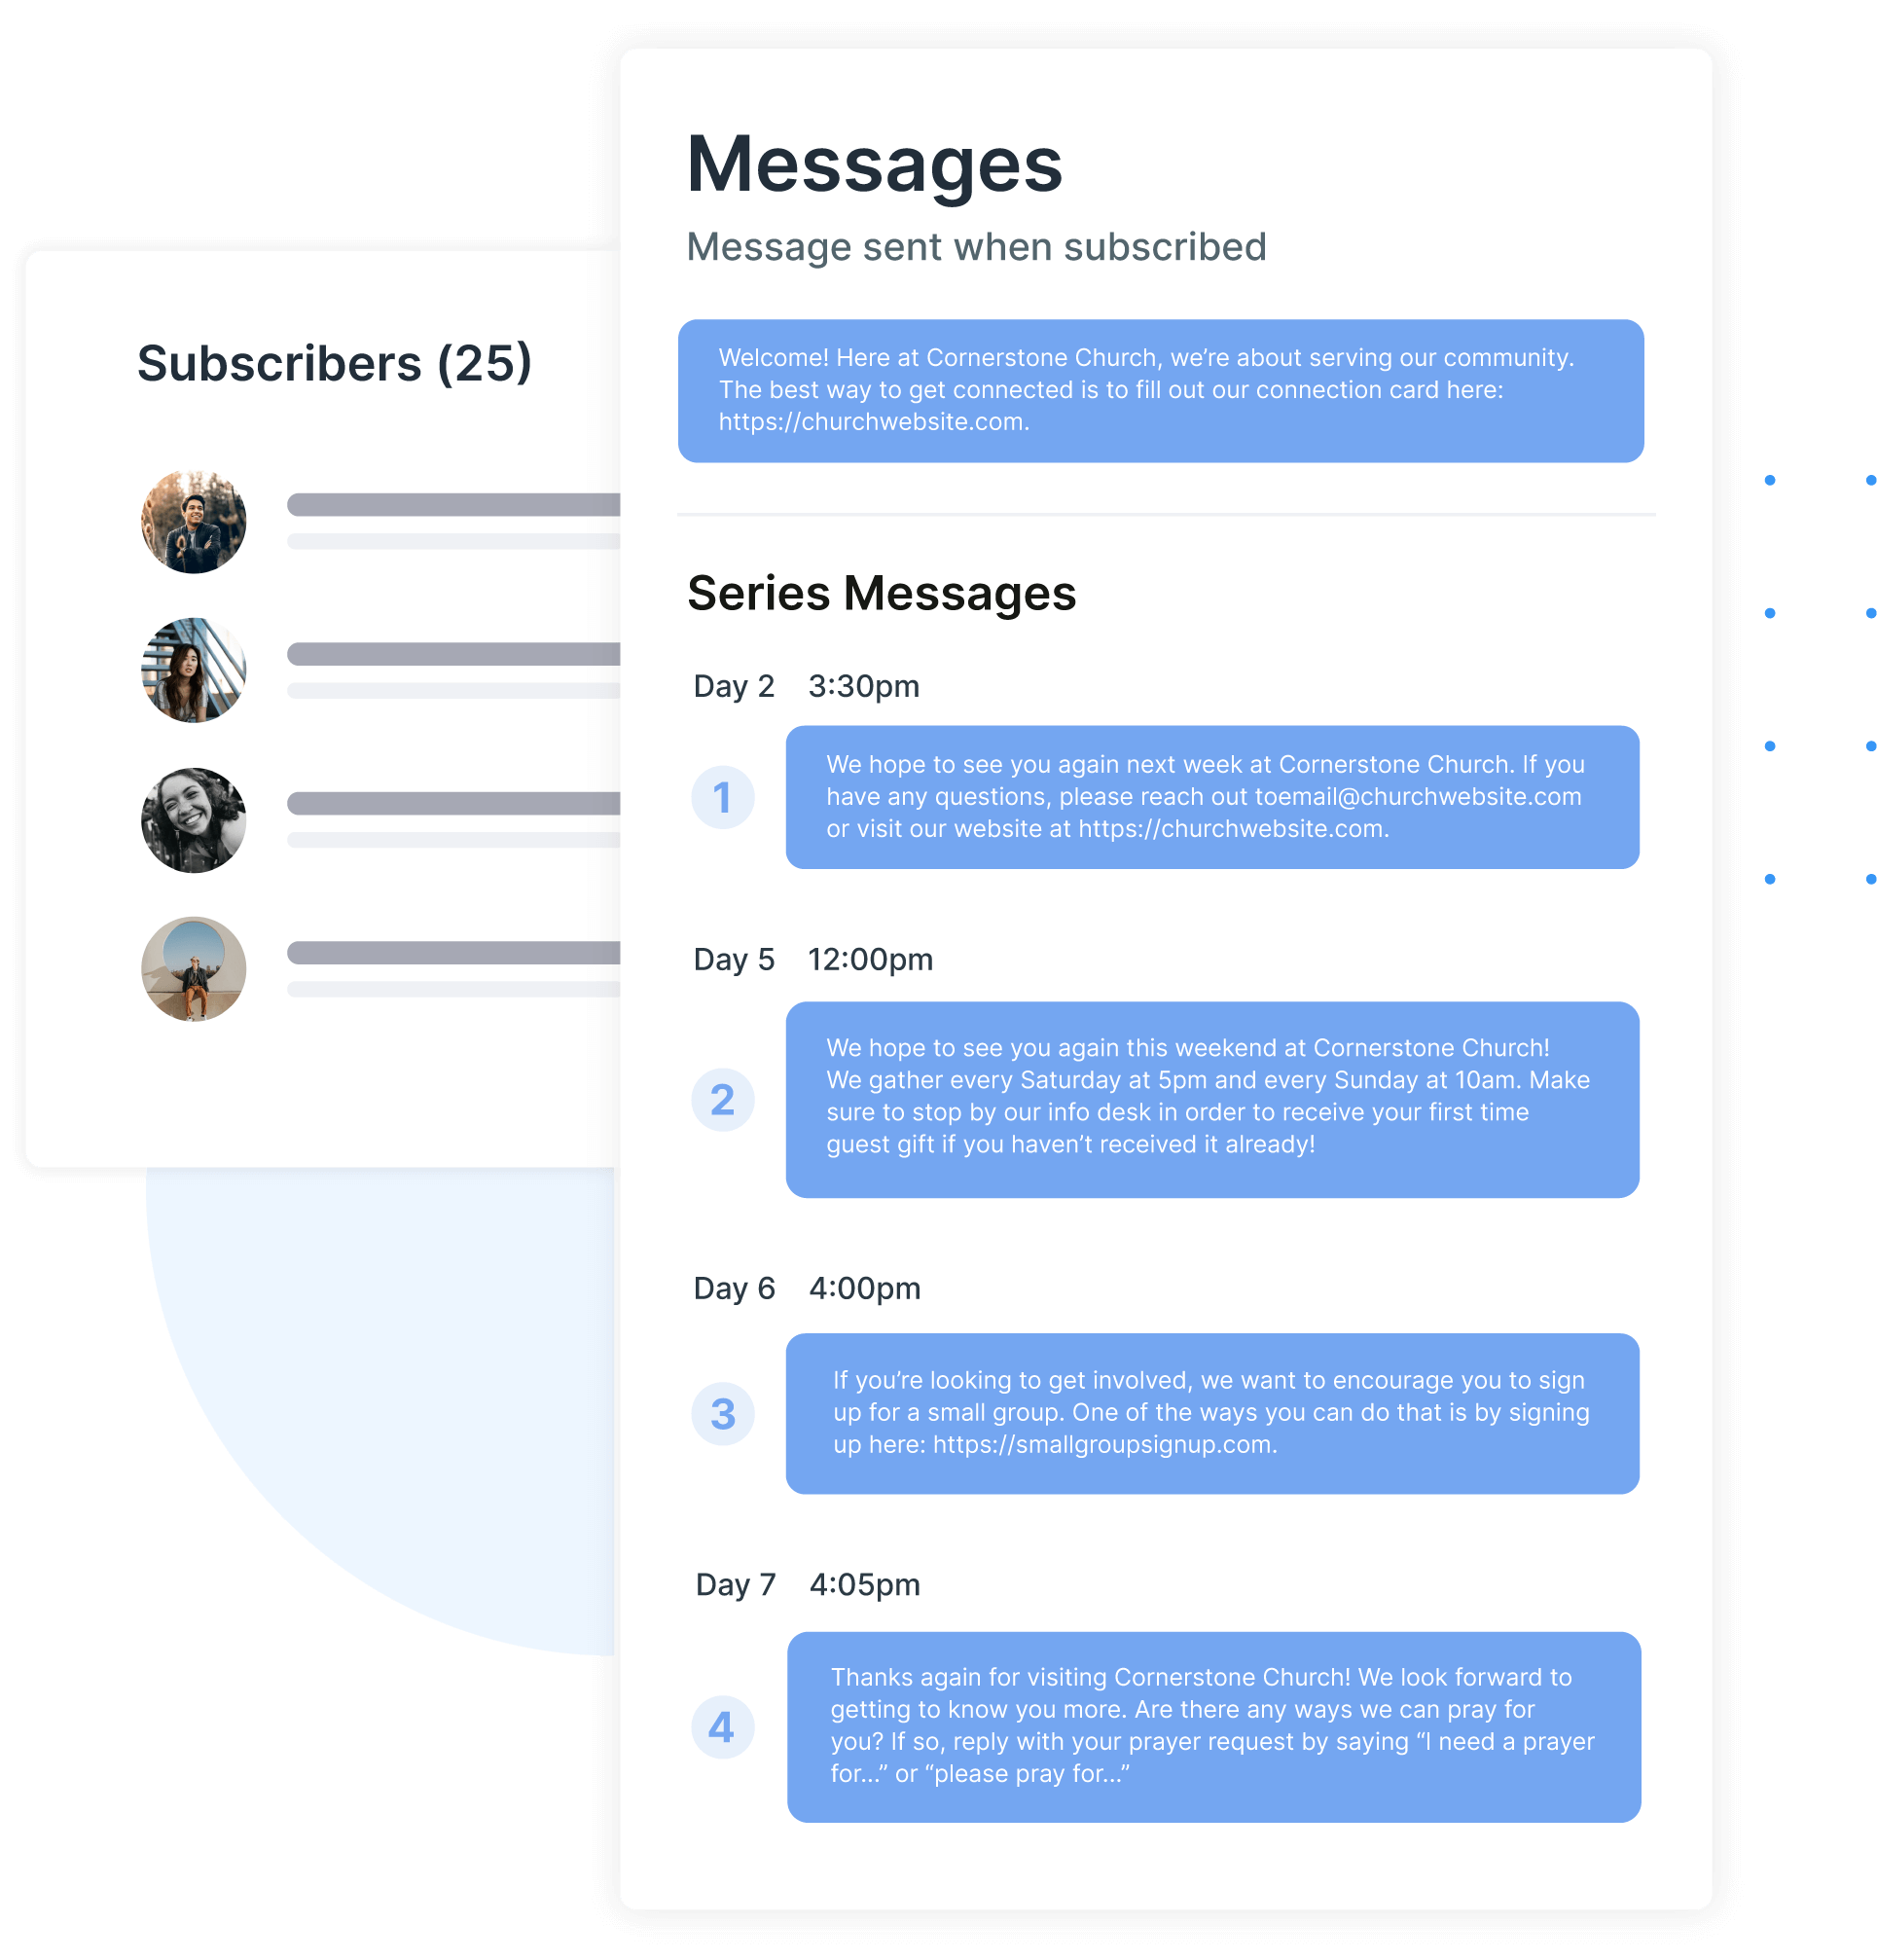 Create a series of messages to send to your people. Specify the date and time each message should be sent.